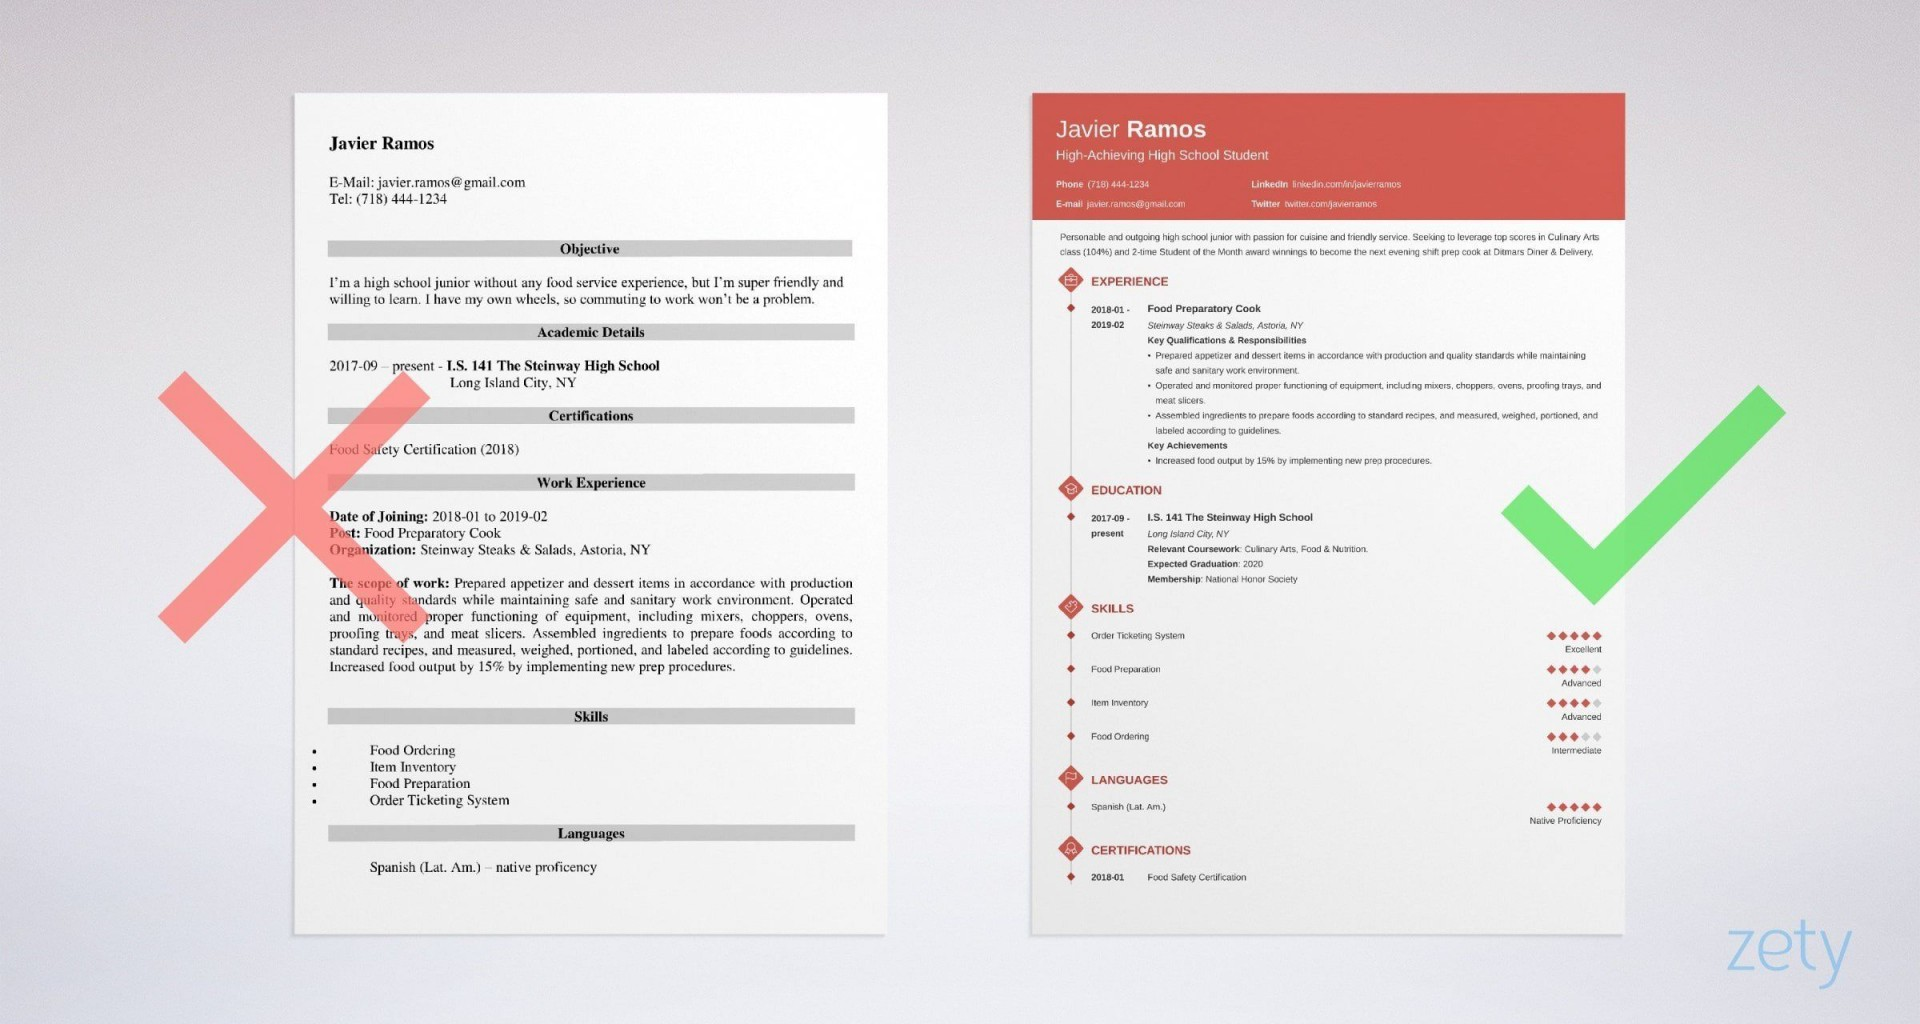 006 Remarkable High School Student Resume Template Idea  Free Microsoft Word 20101920